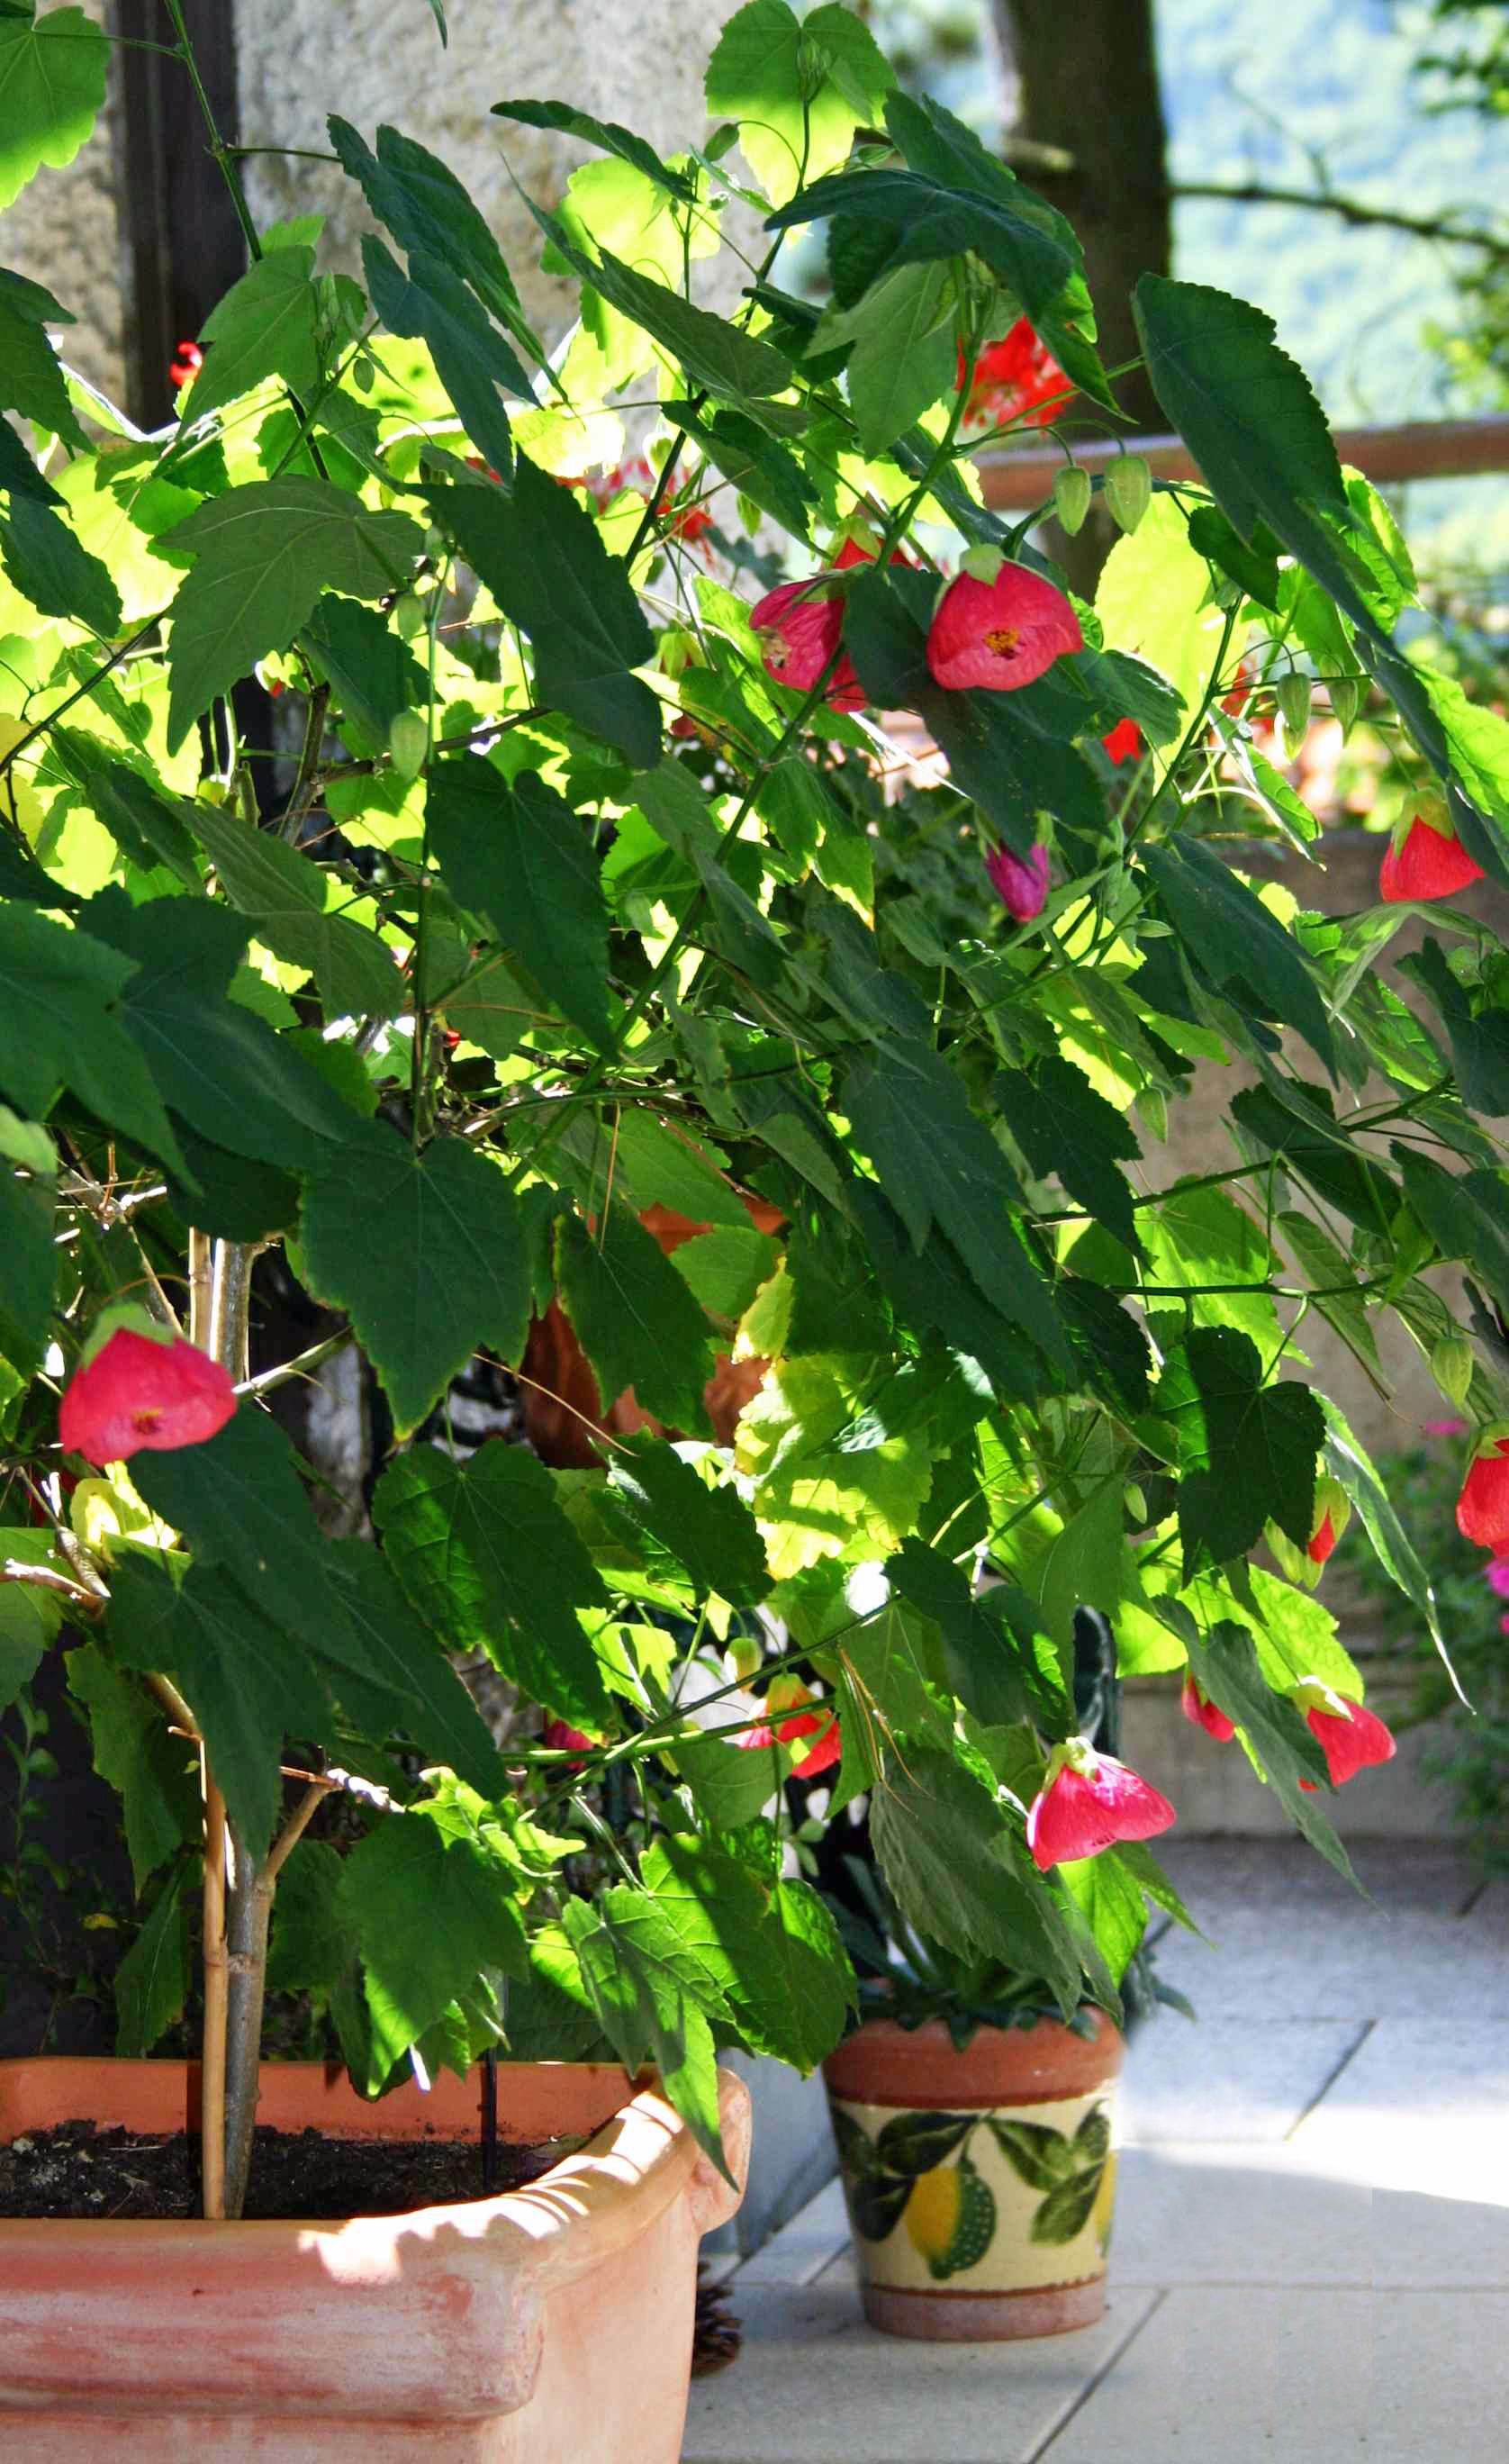 Abutilon plants growing in a container